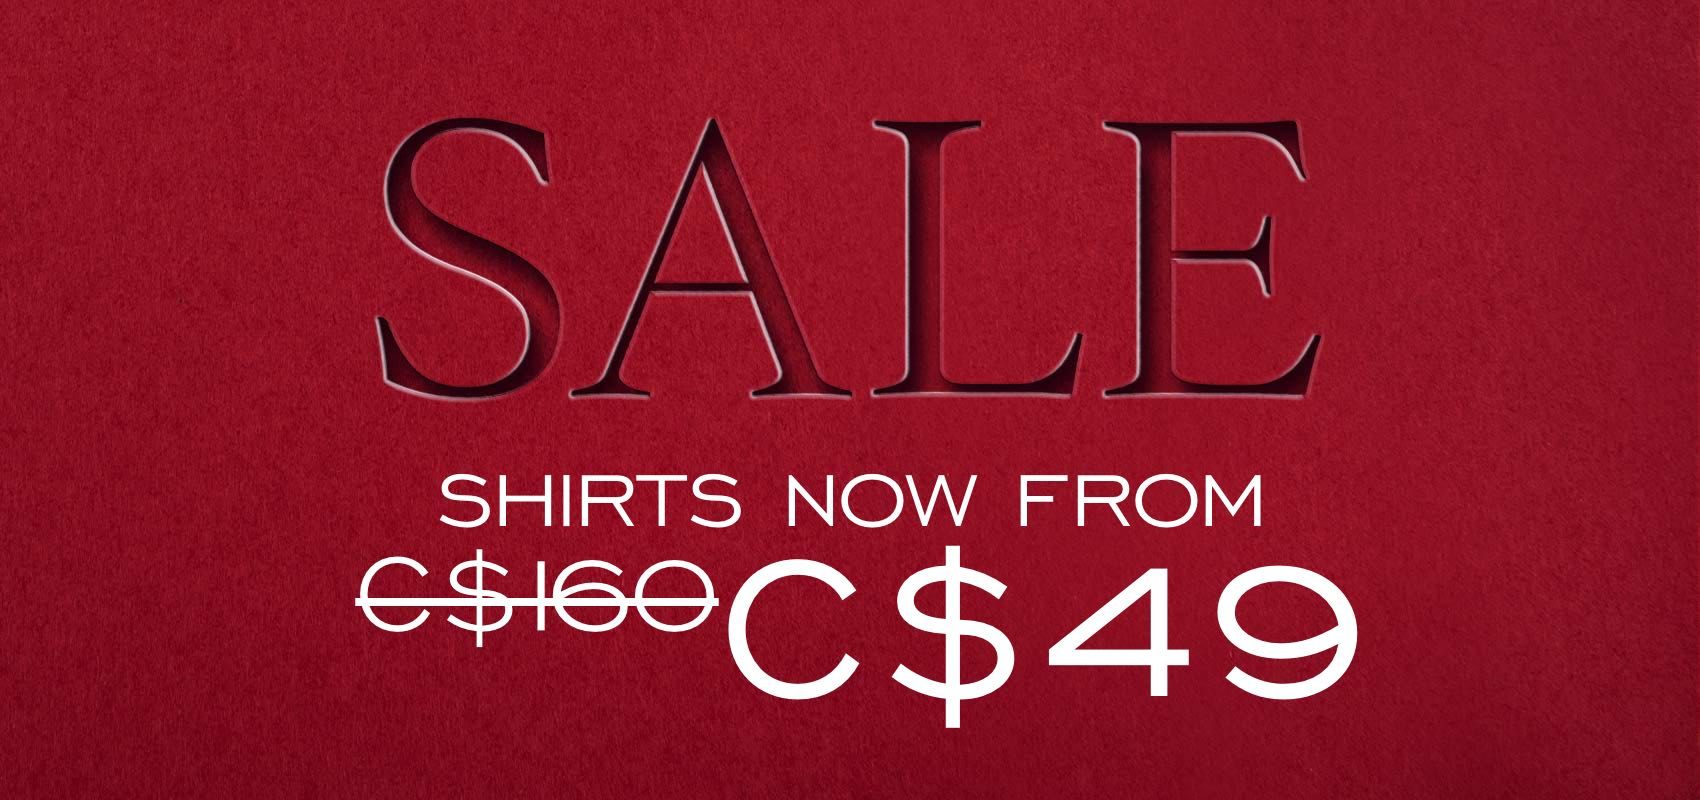 Shirts now from C$49